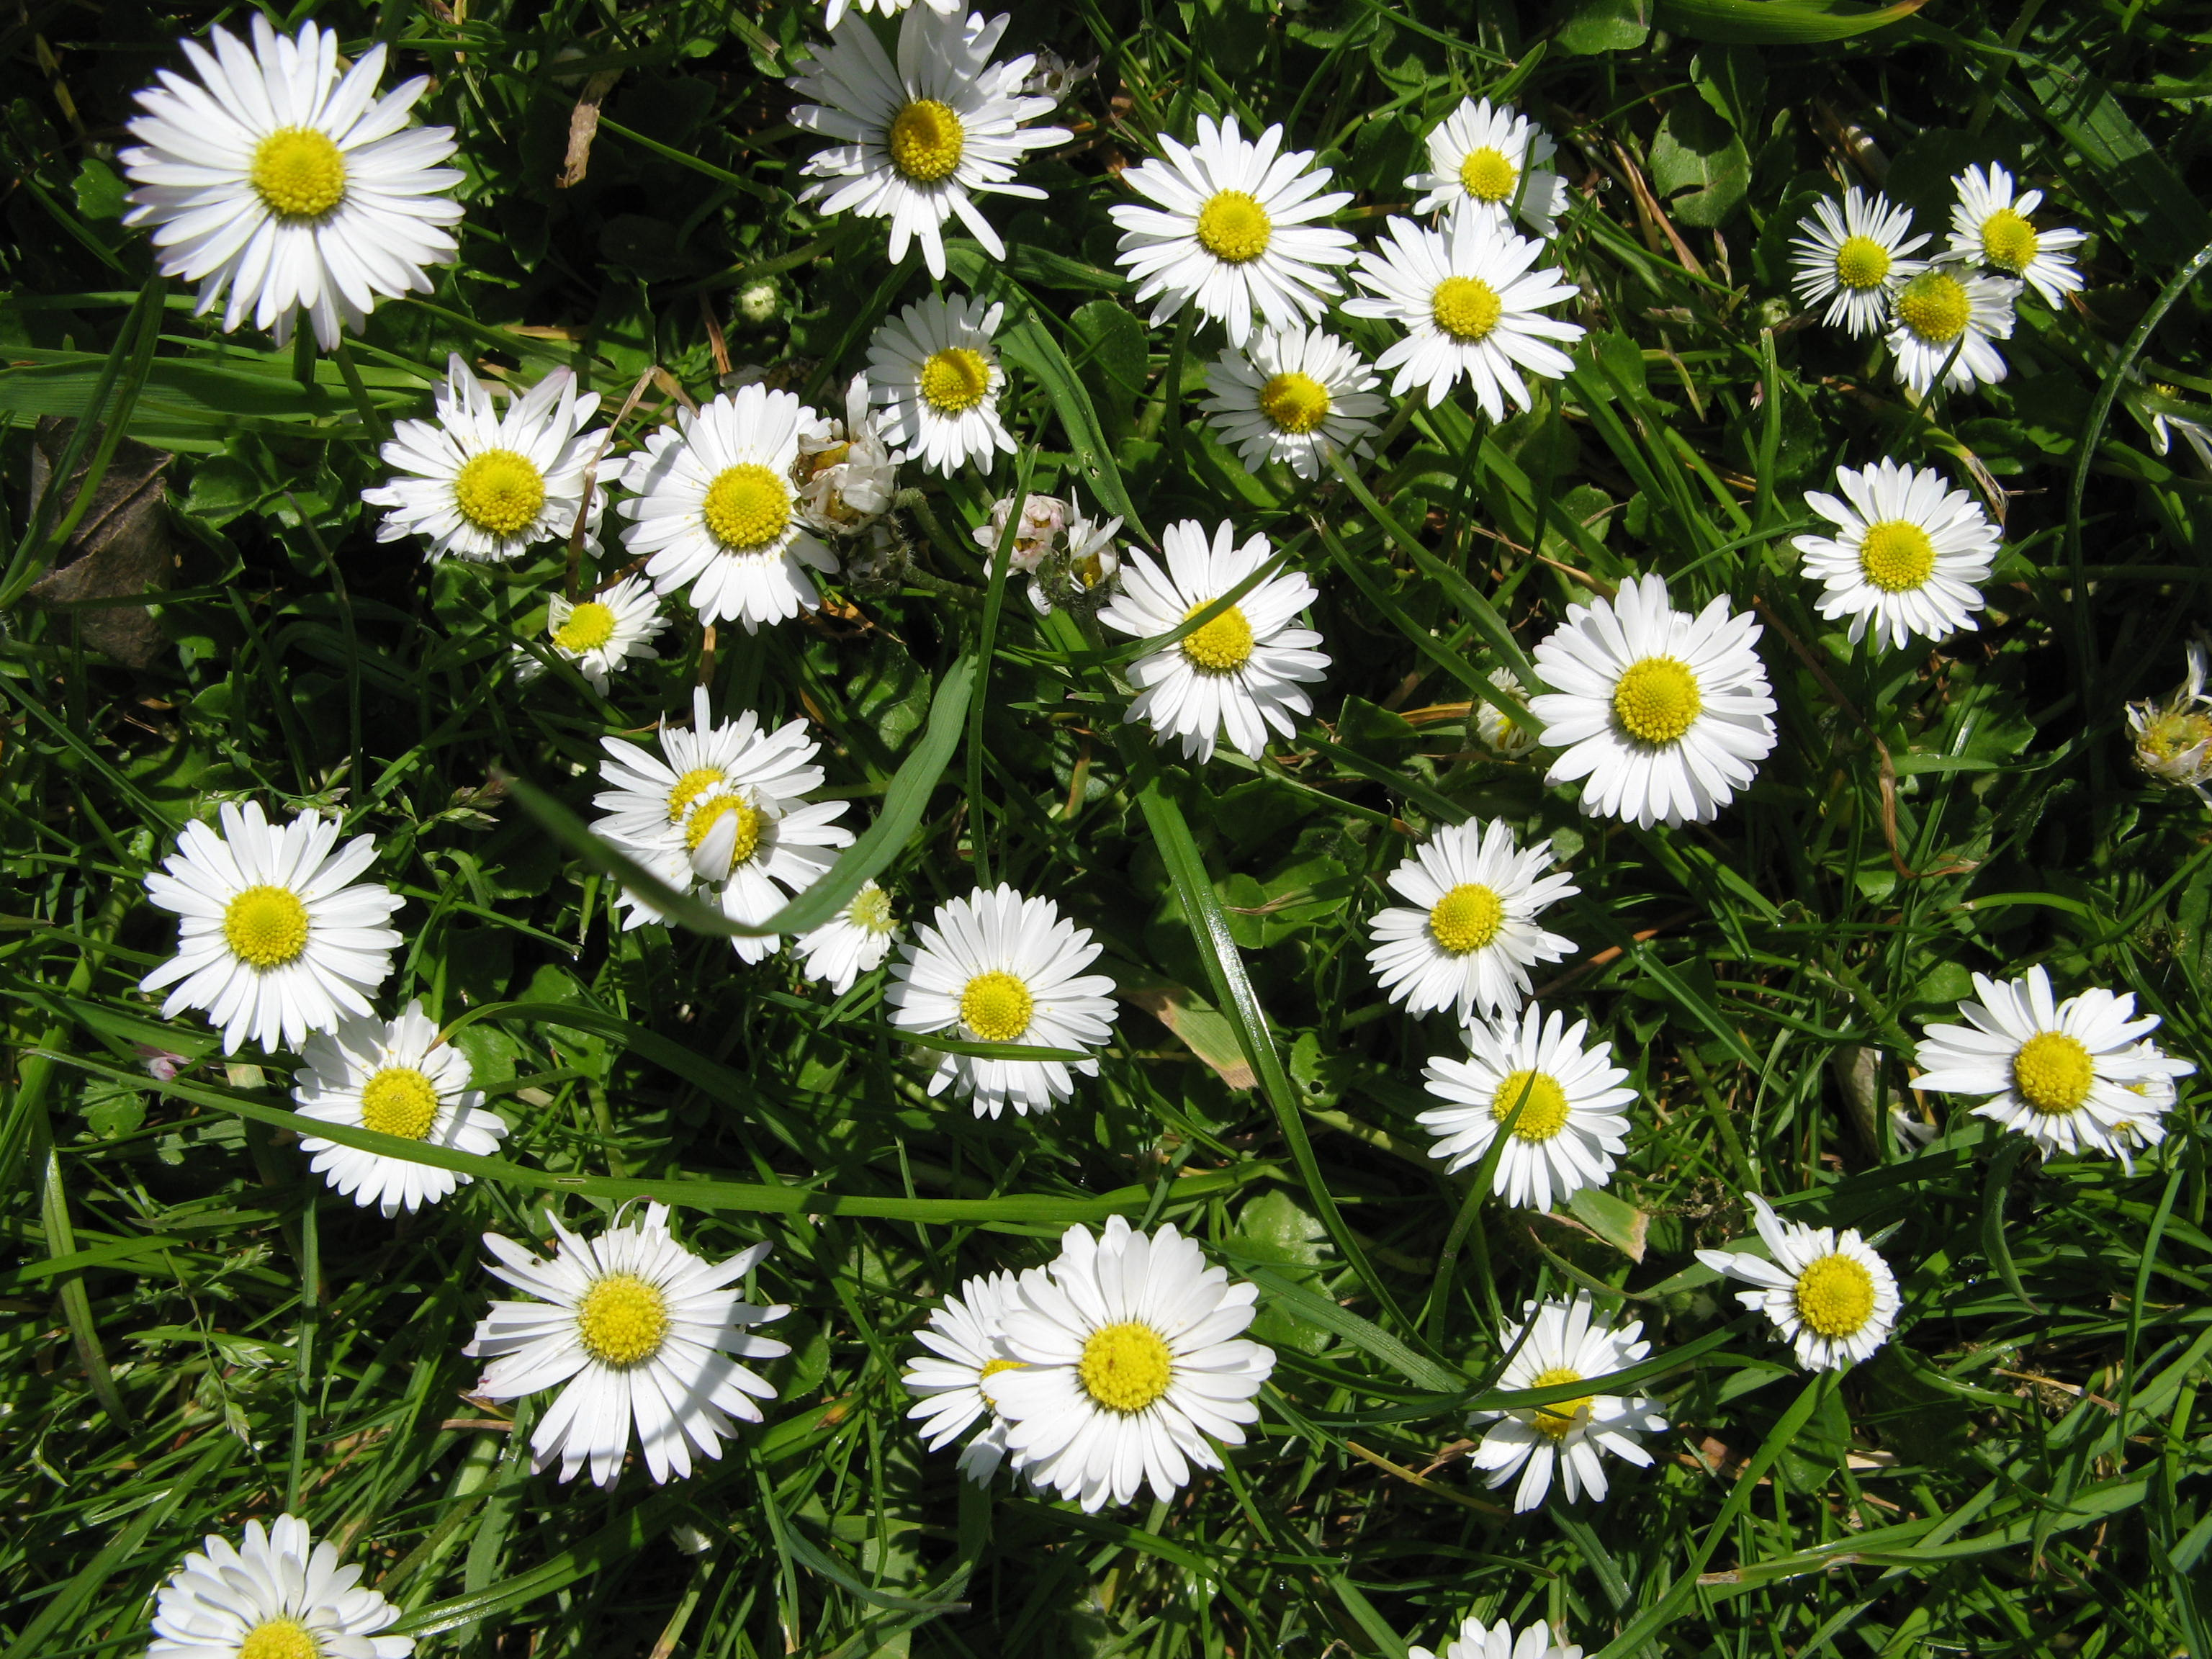 Wild daisies agnesandcora my favourites are wild ox eye daisies i would love to grow them in the garden but in the meantime i have marguerittes swan river daisies bellis daisies izmirmasajfo